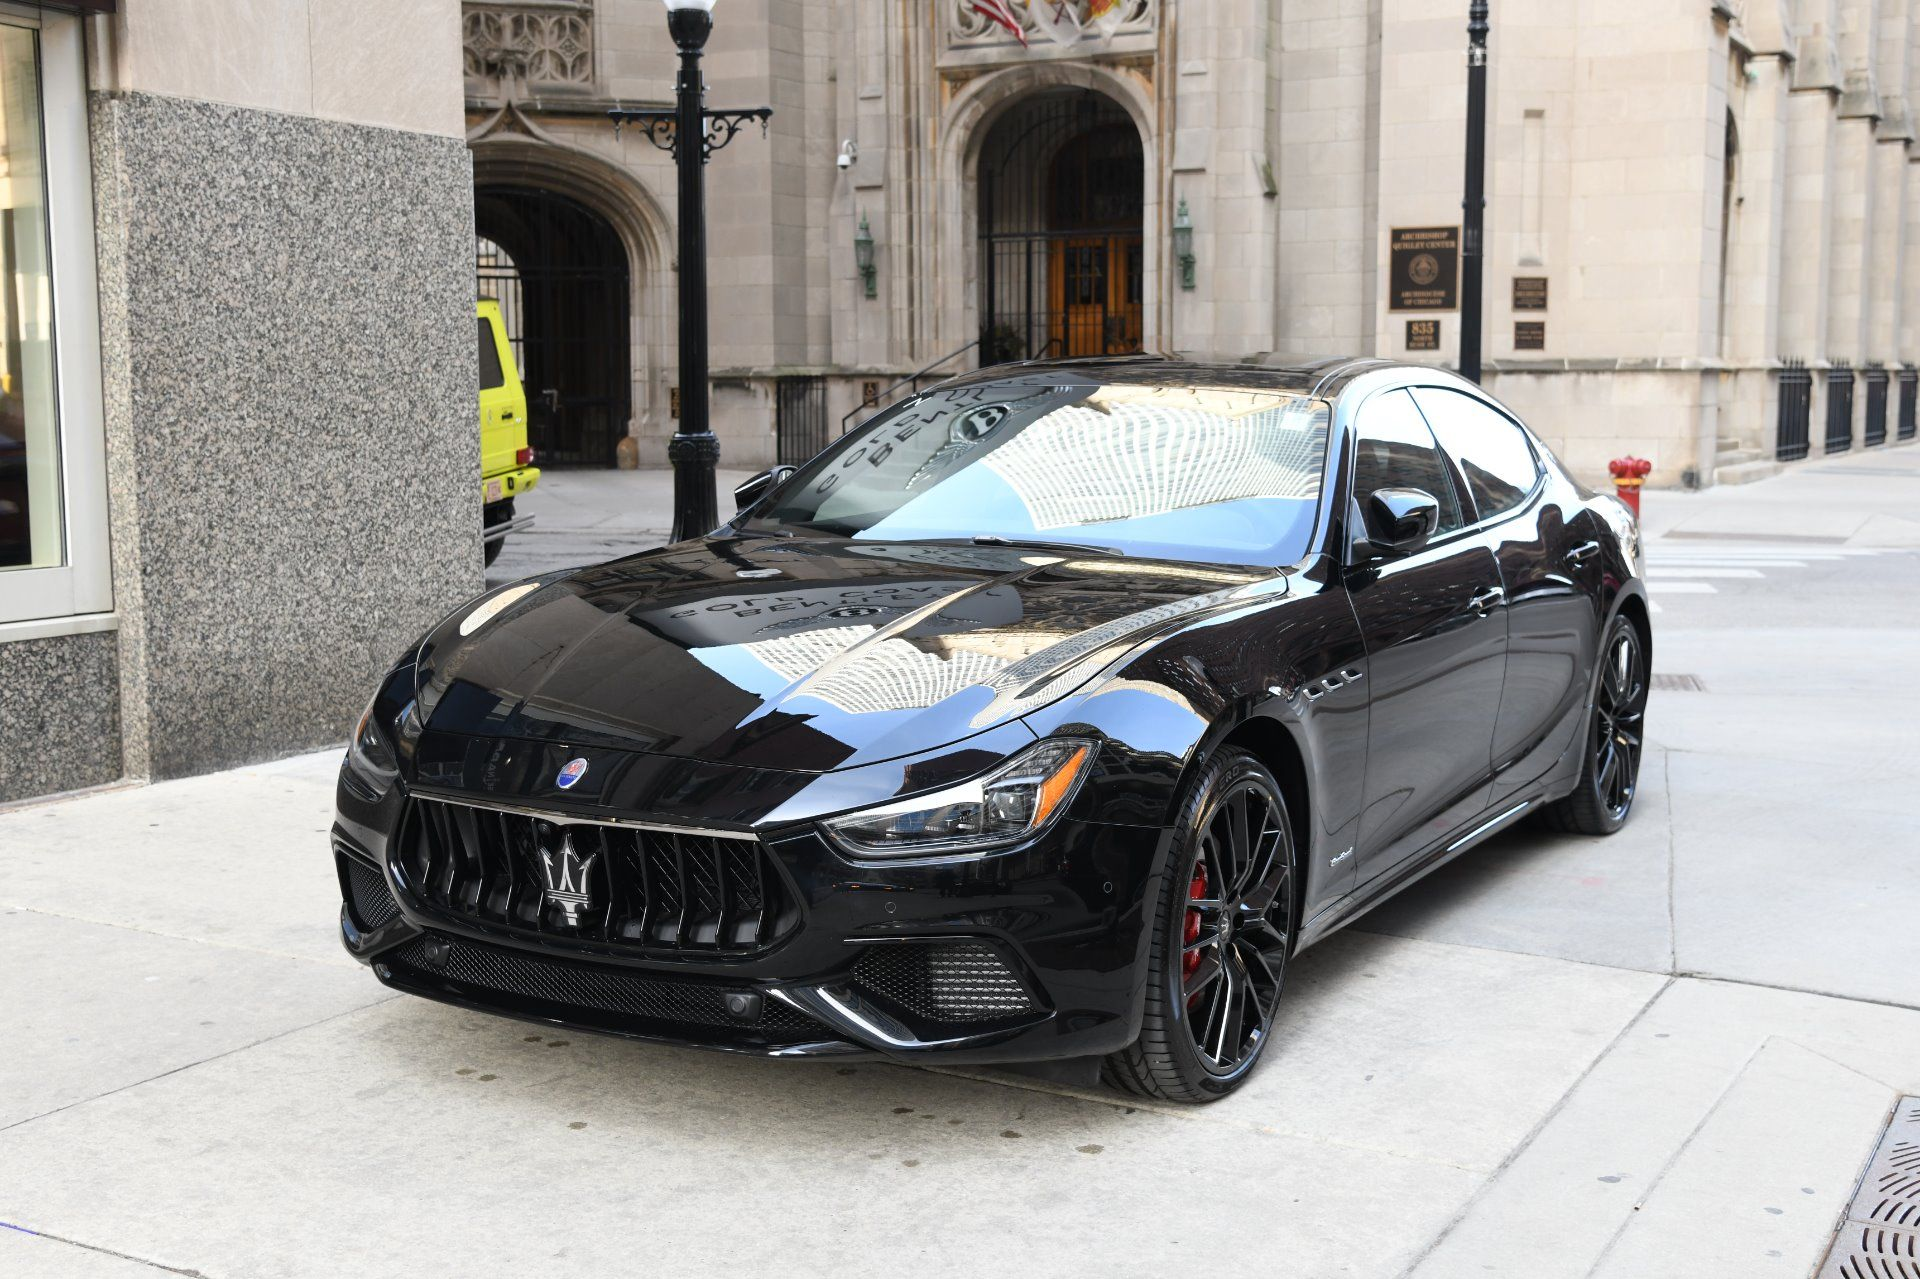 2020 Maserati Ghibli SQ4 GranSport  Stock # M691-S for sale near Chicago, IL | IL Maserati Dealer